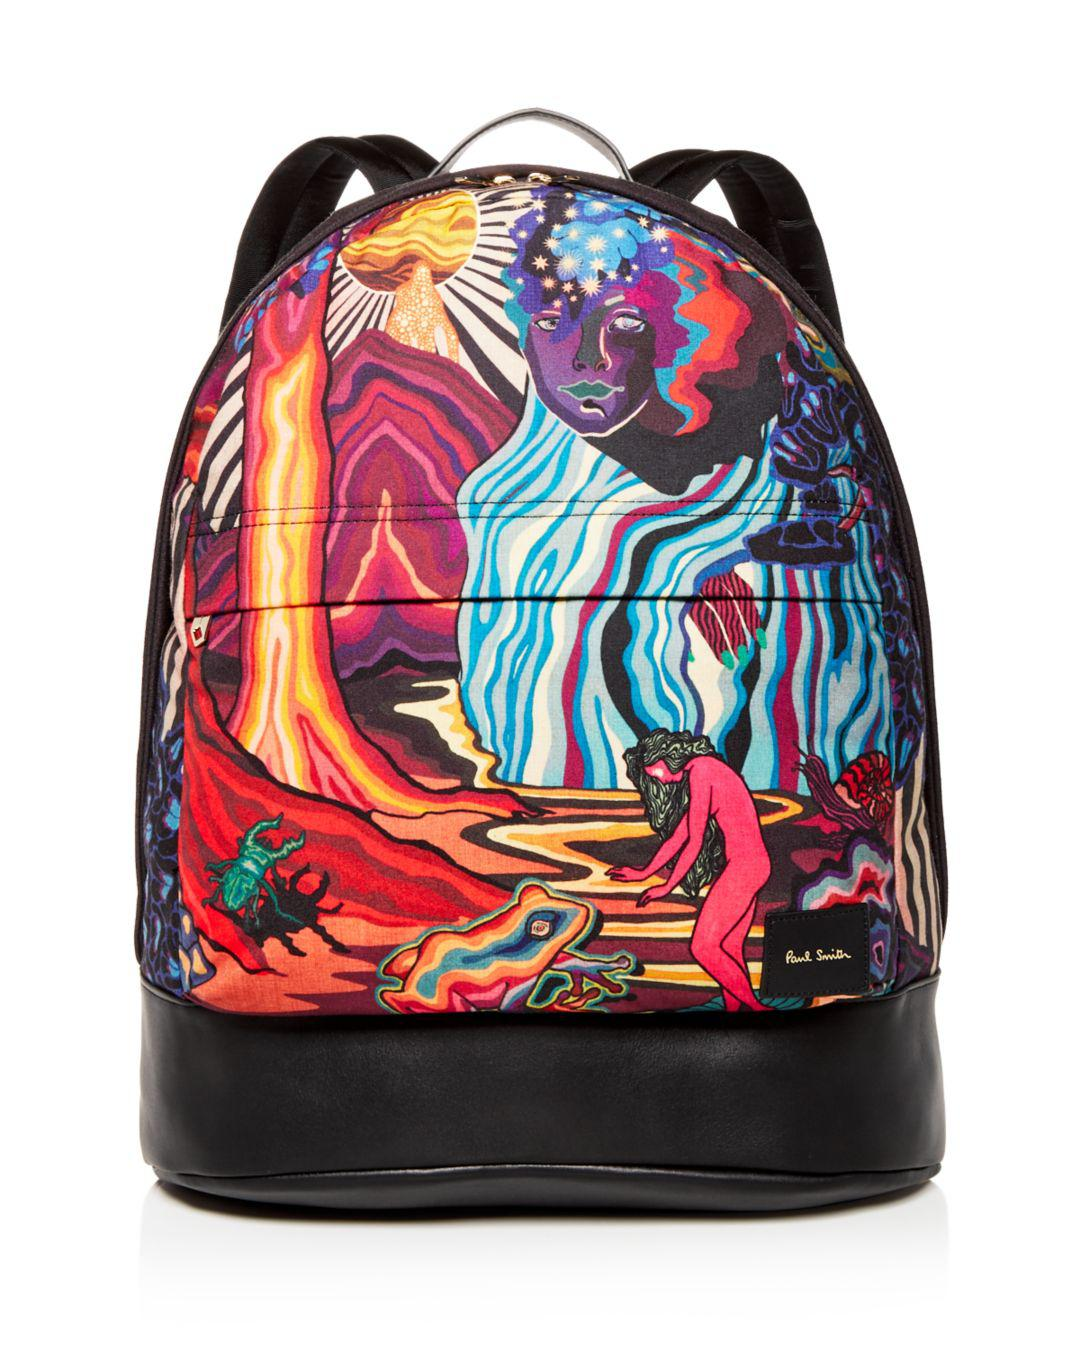 Paul Smith - Black Dreamer Print Leather Backpack for Men - Lyst. View  fullscreen 5ccee47d2